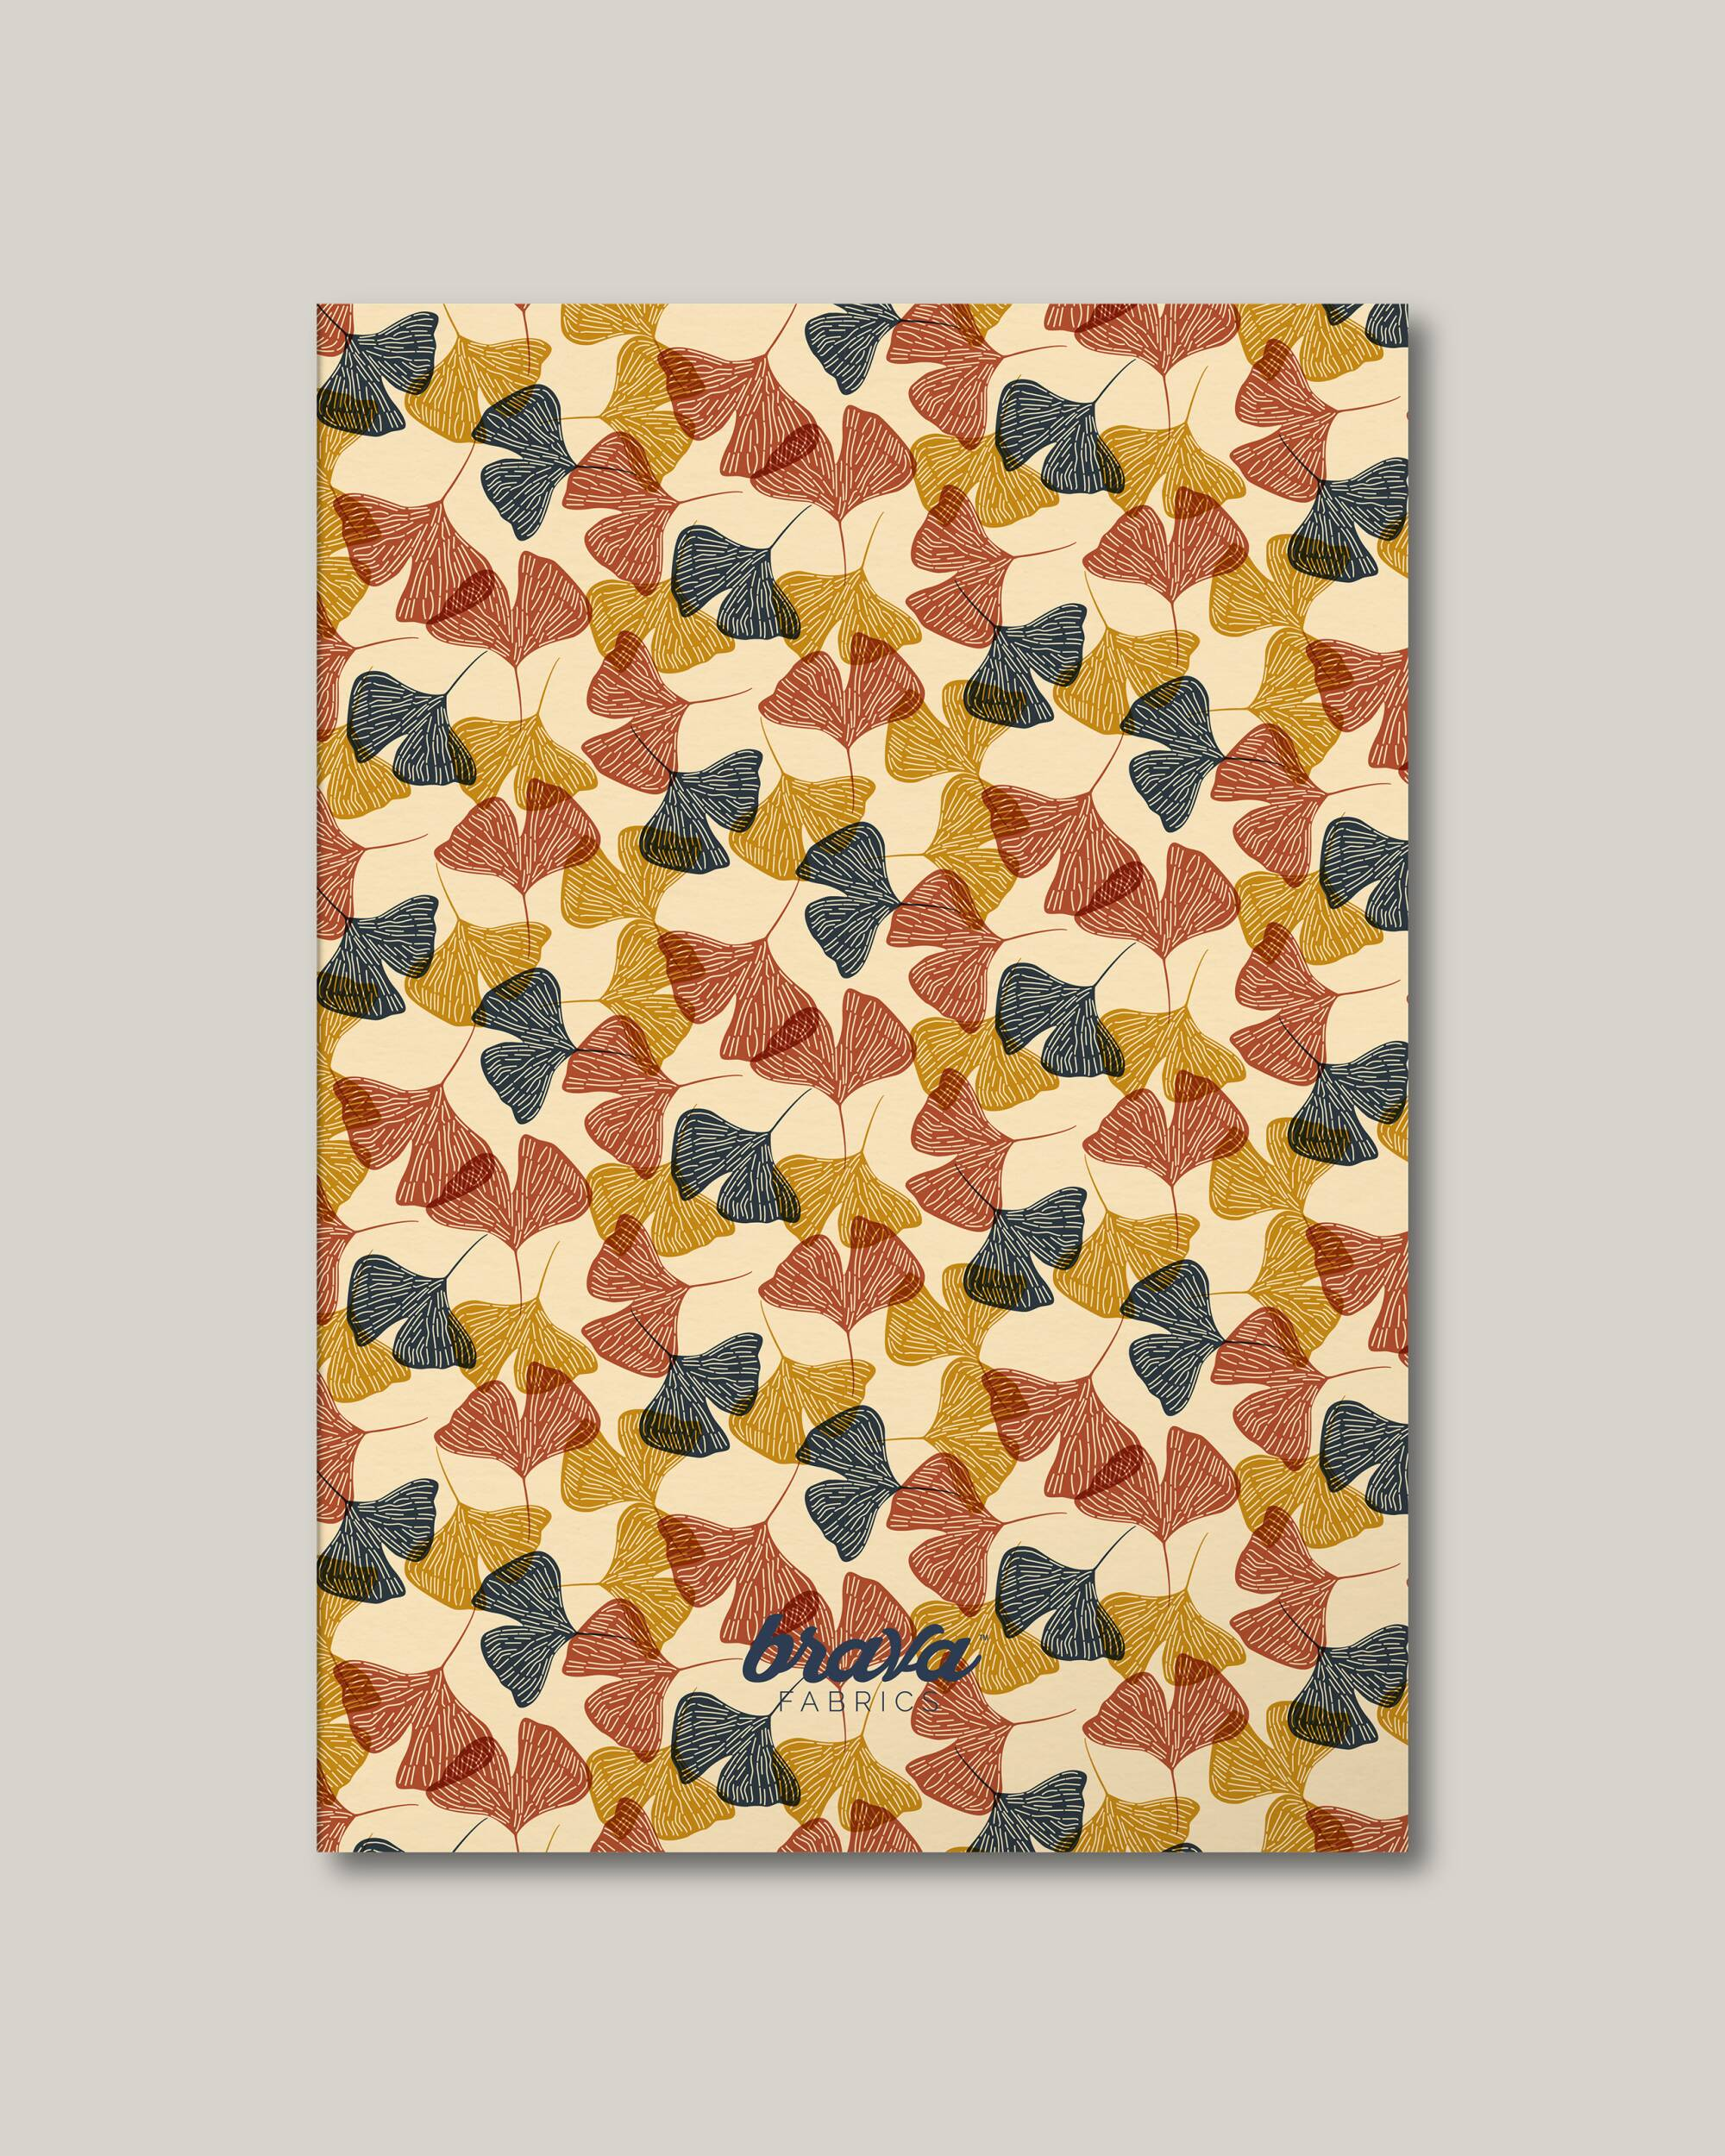 Brava Fabrics - Notebook - Sustainable Notebook - Notebook FSC certified - Model Gingko